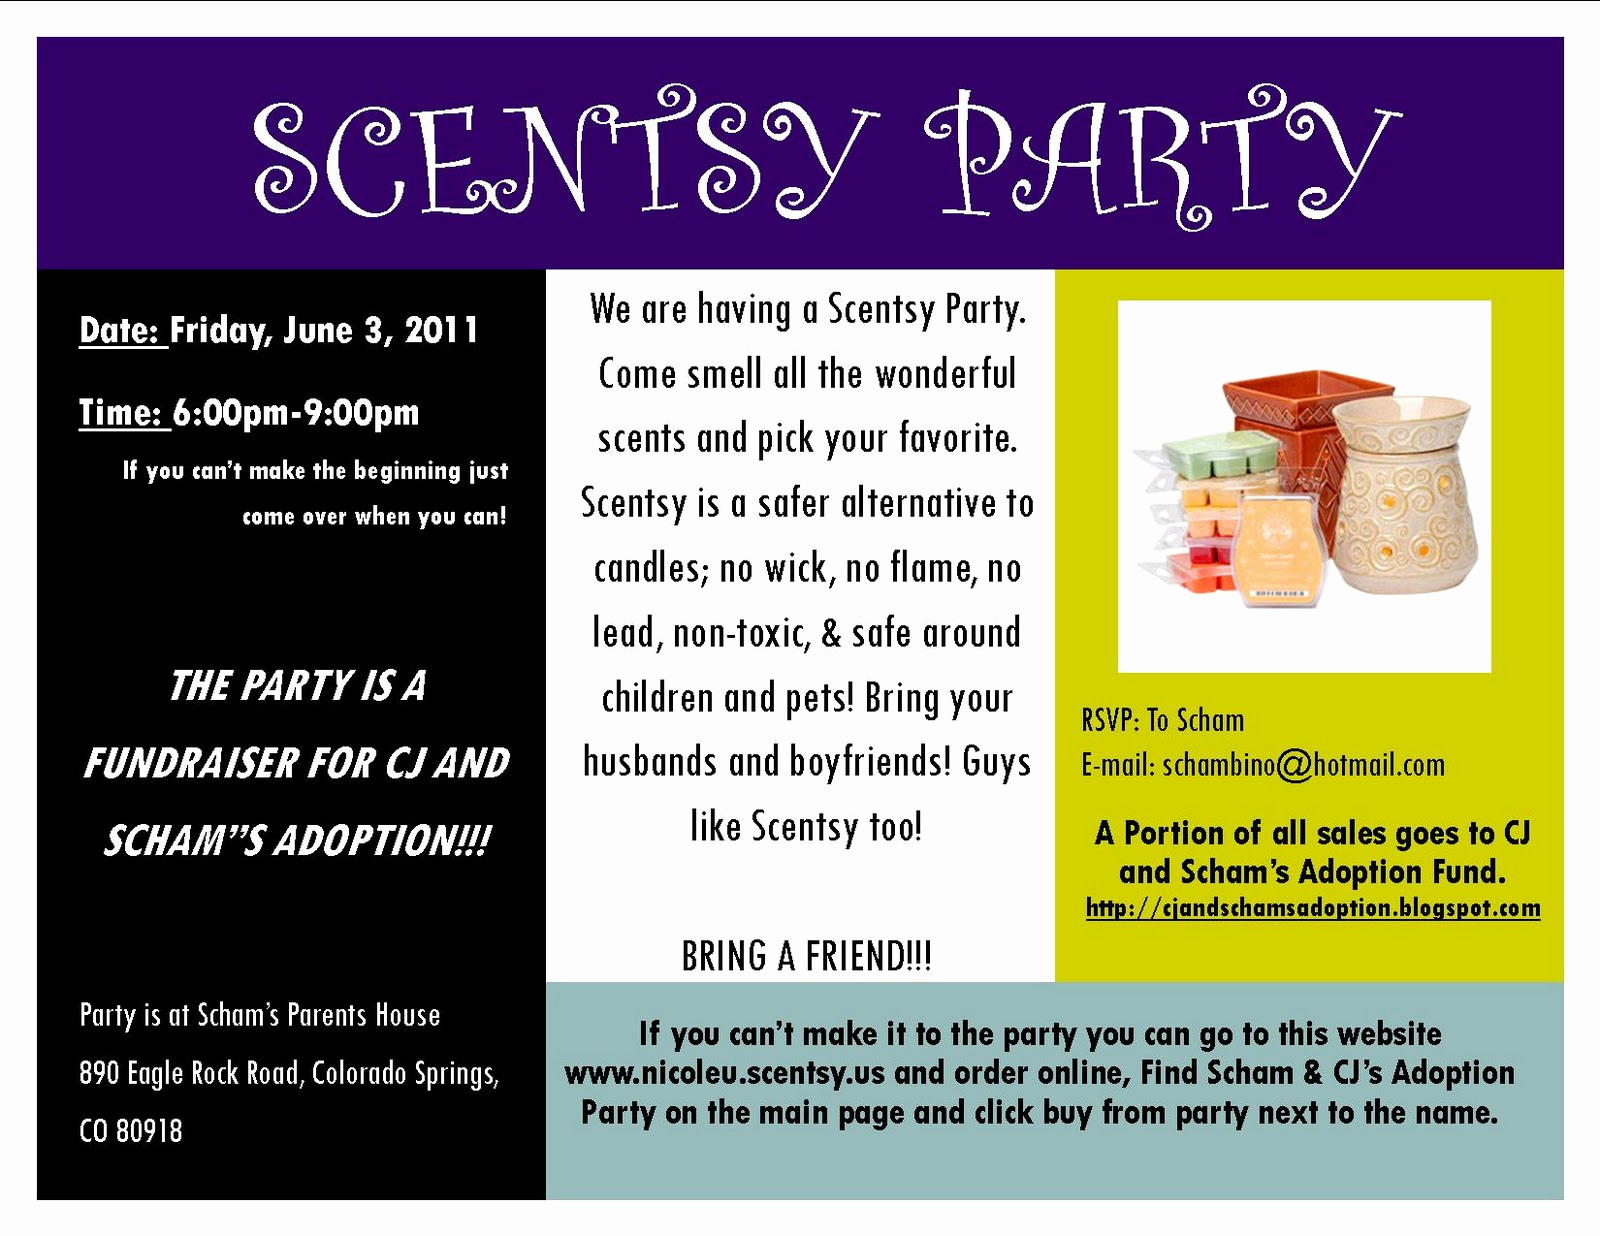 Scentsy Party Invitation Template Awesome Cj & Scham S Adoption Journey New Scentsy Fundraiser